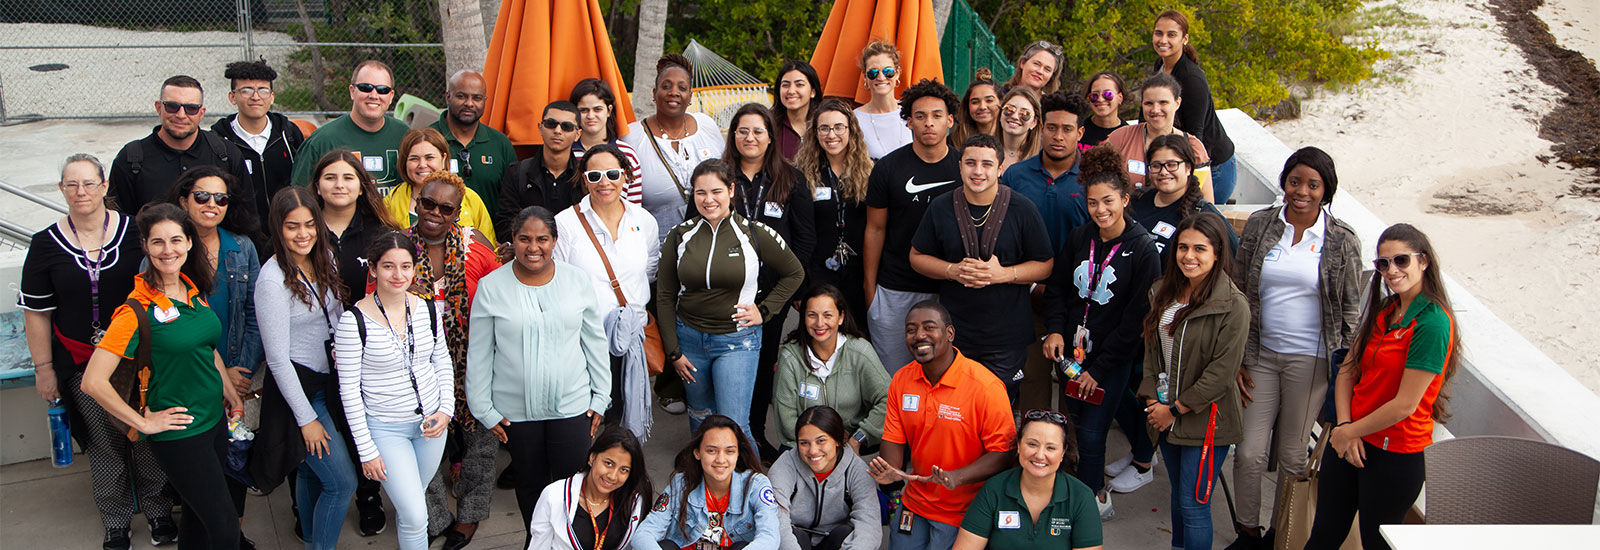 Participants in Big Brothers Big Sisters School to Work program at UM's marine campus.